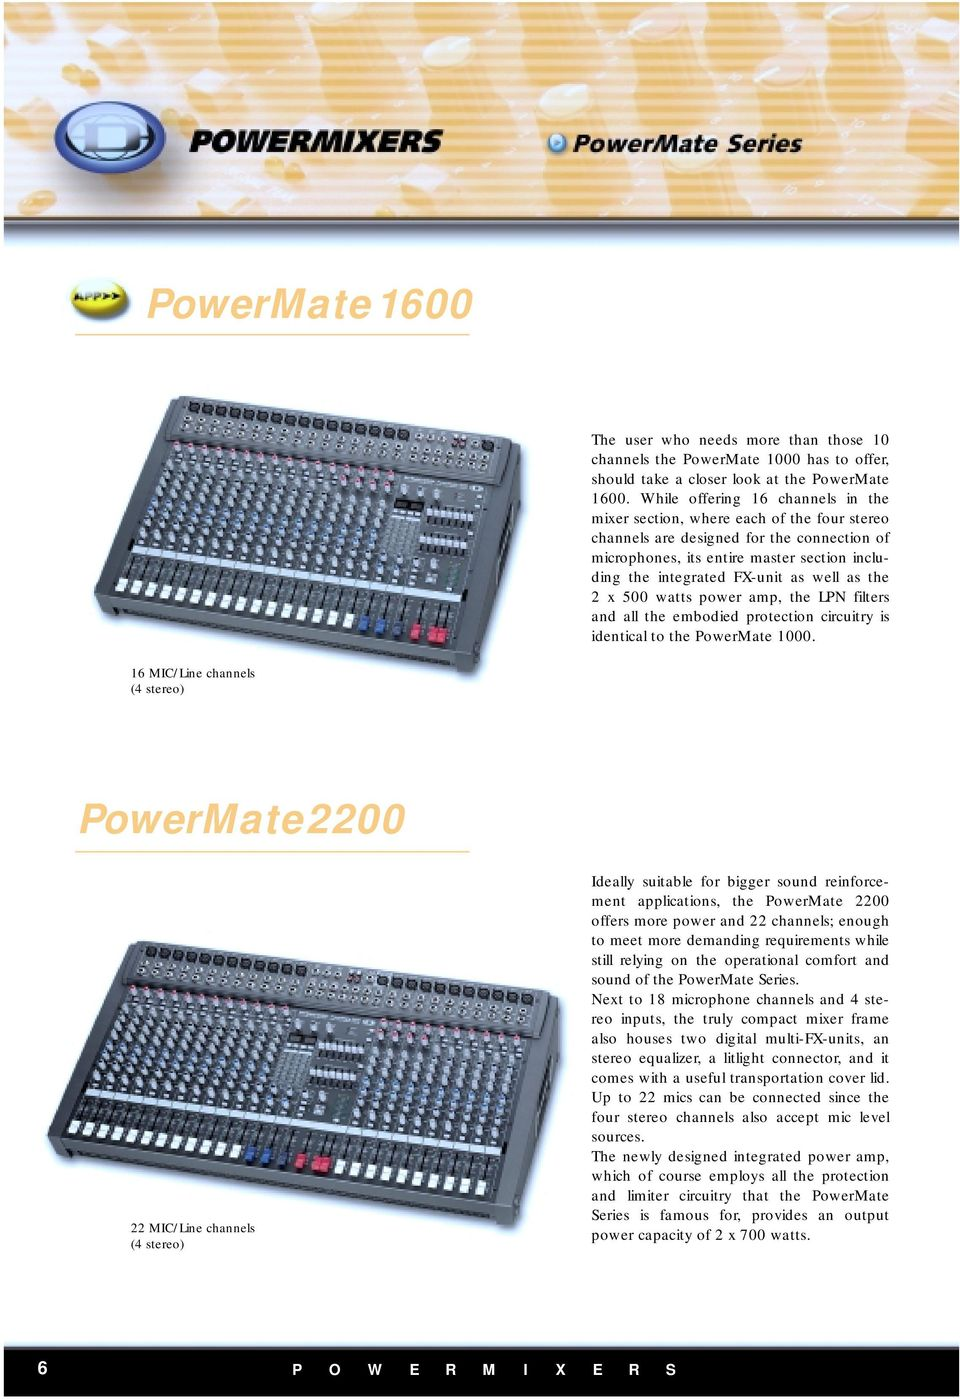 Dynacord History Pdf 2220 Bose Amplifier Wiring Diagram Well As The 2 X 500 Watts Power Amp Lpn Filters And All